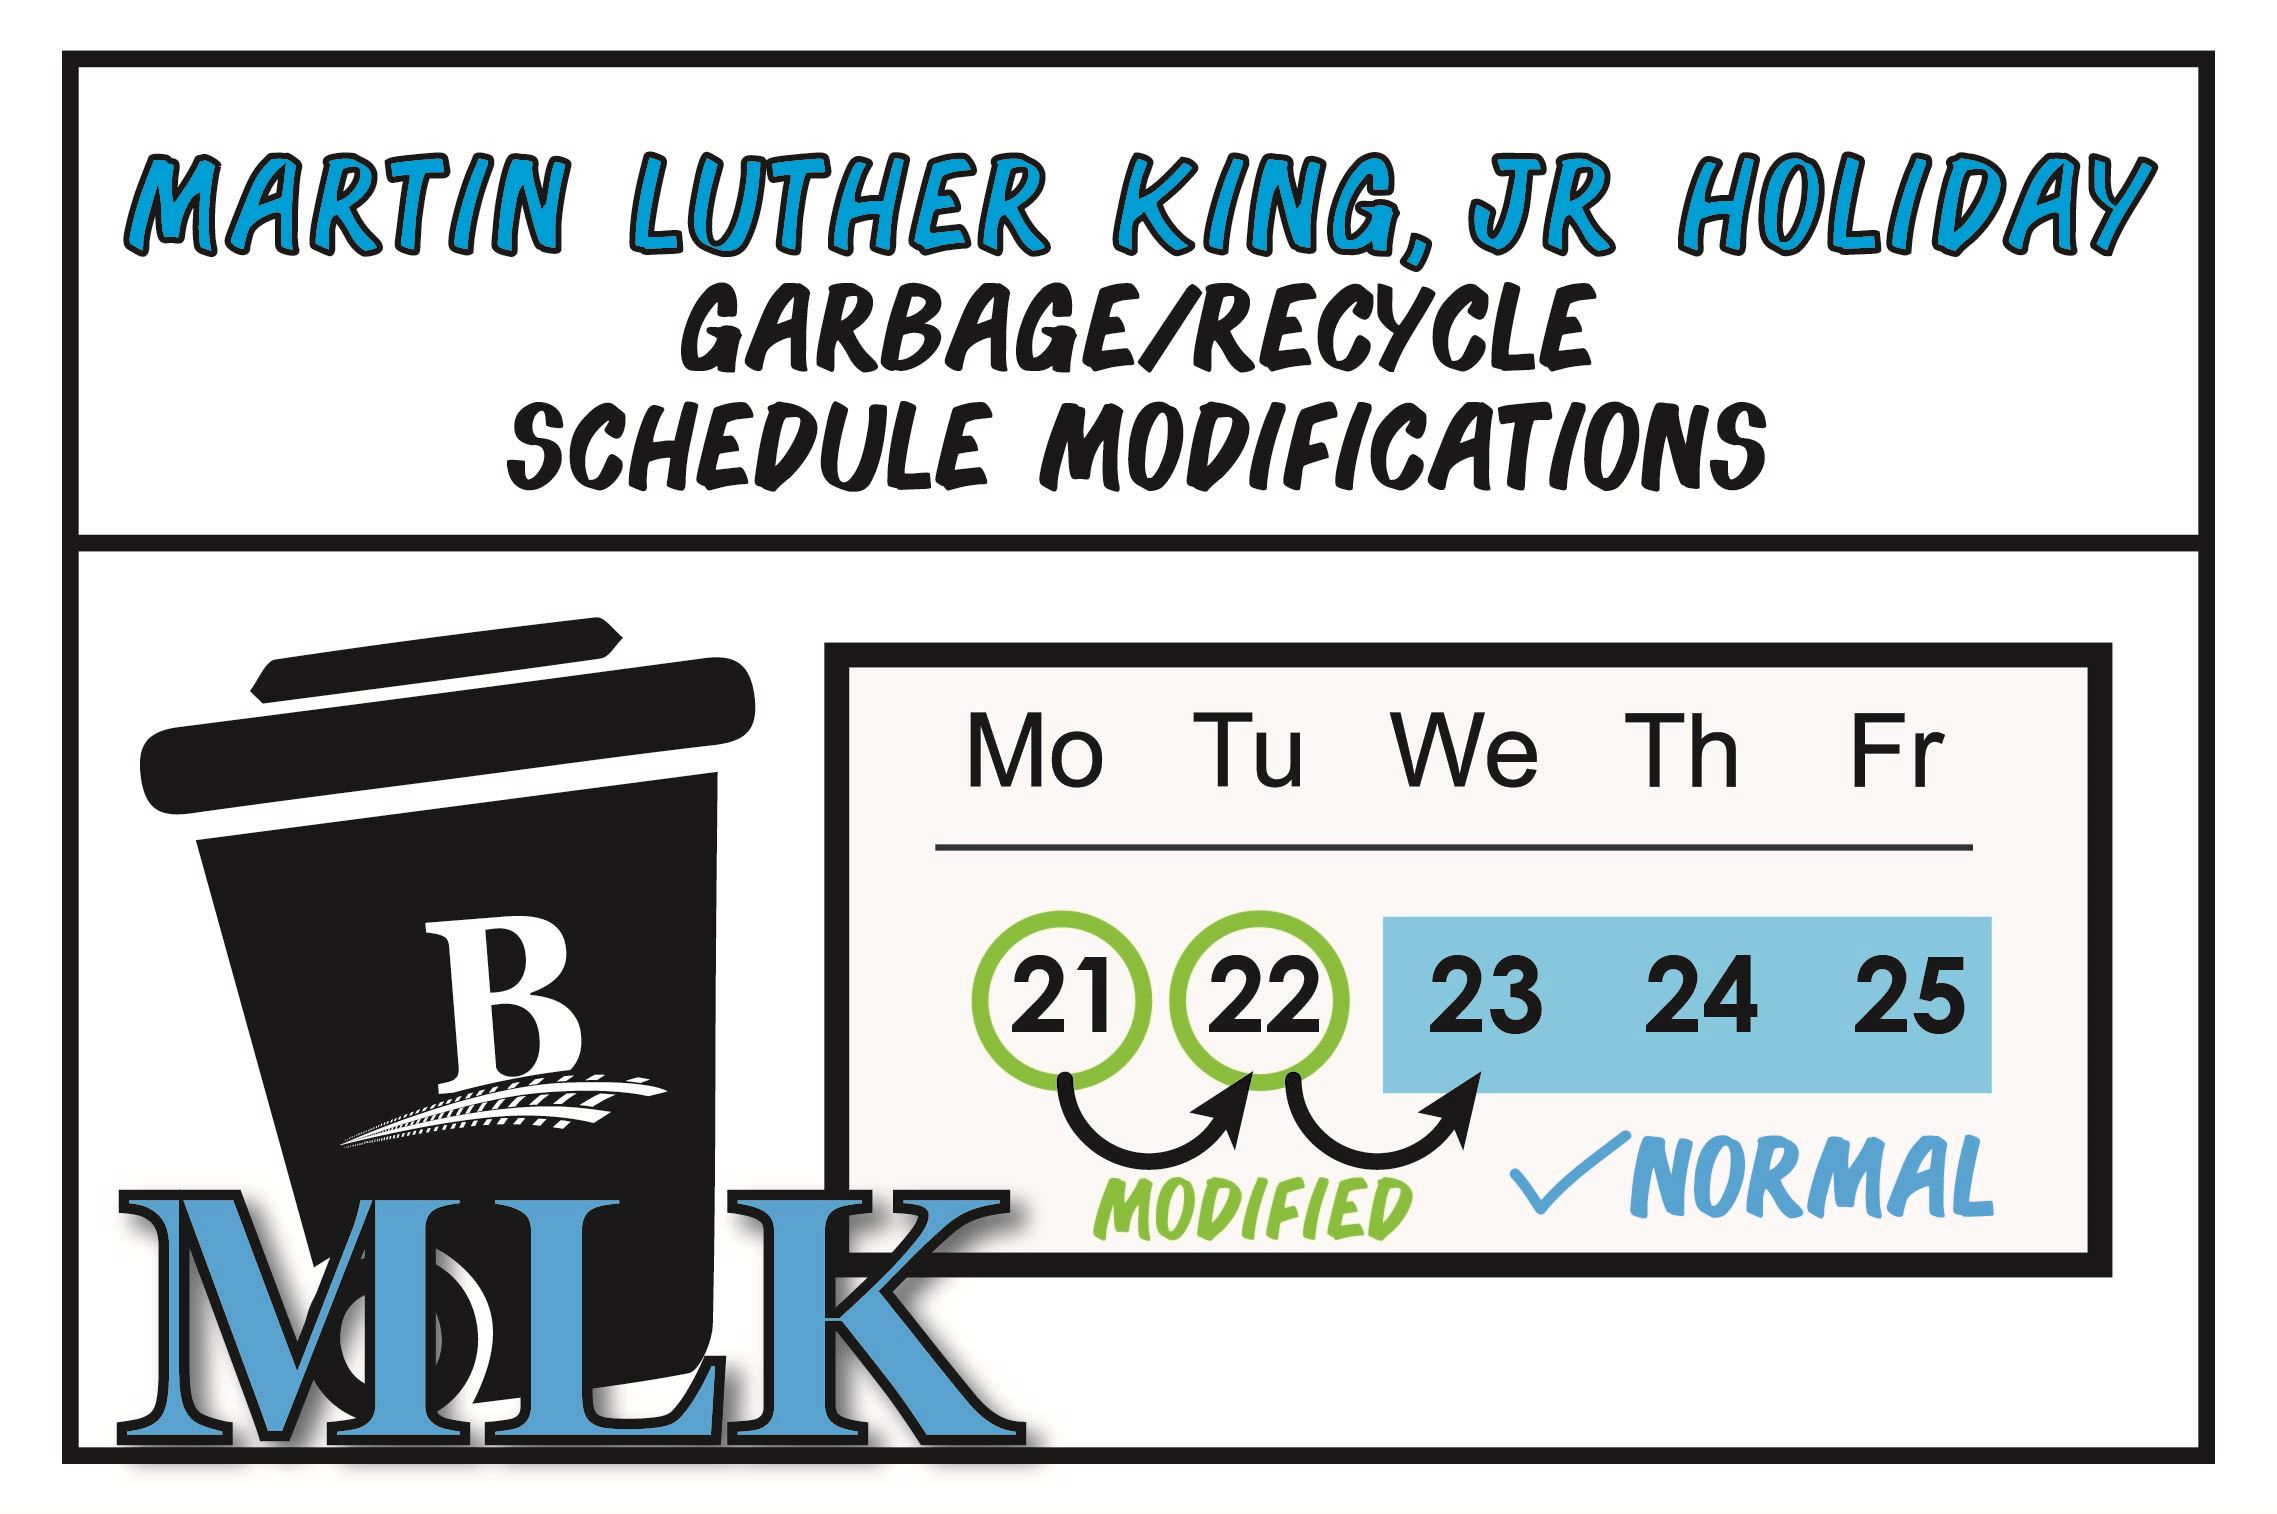 MLK Social Media 2019 Holiday Schedule change-02